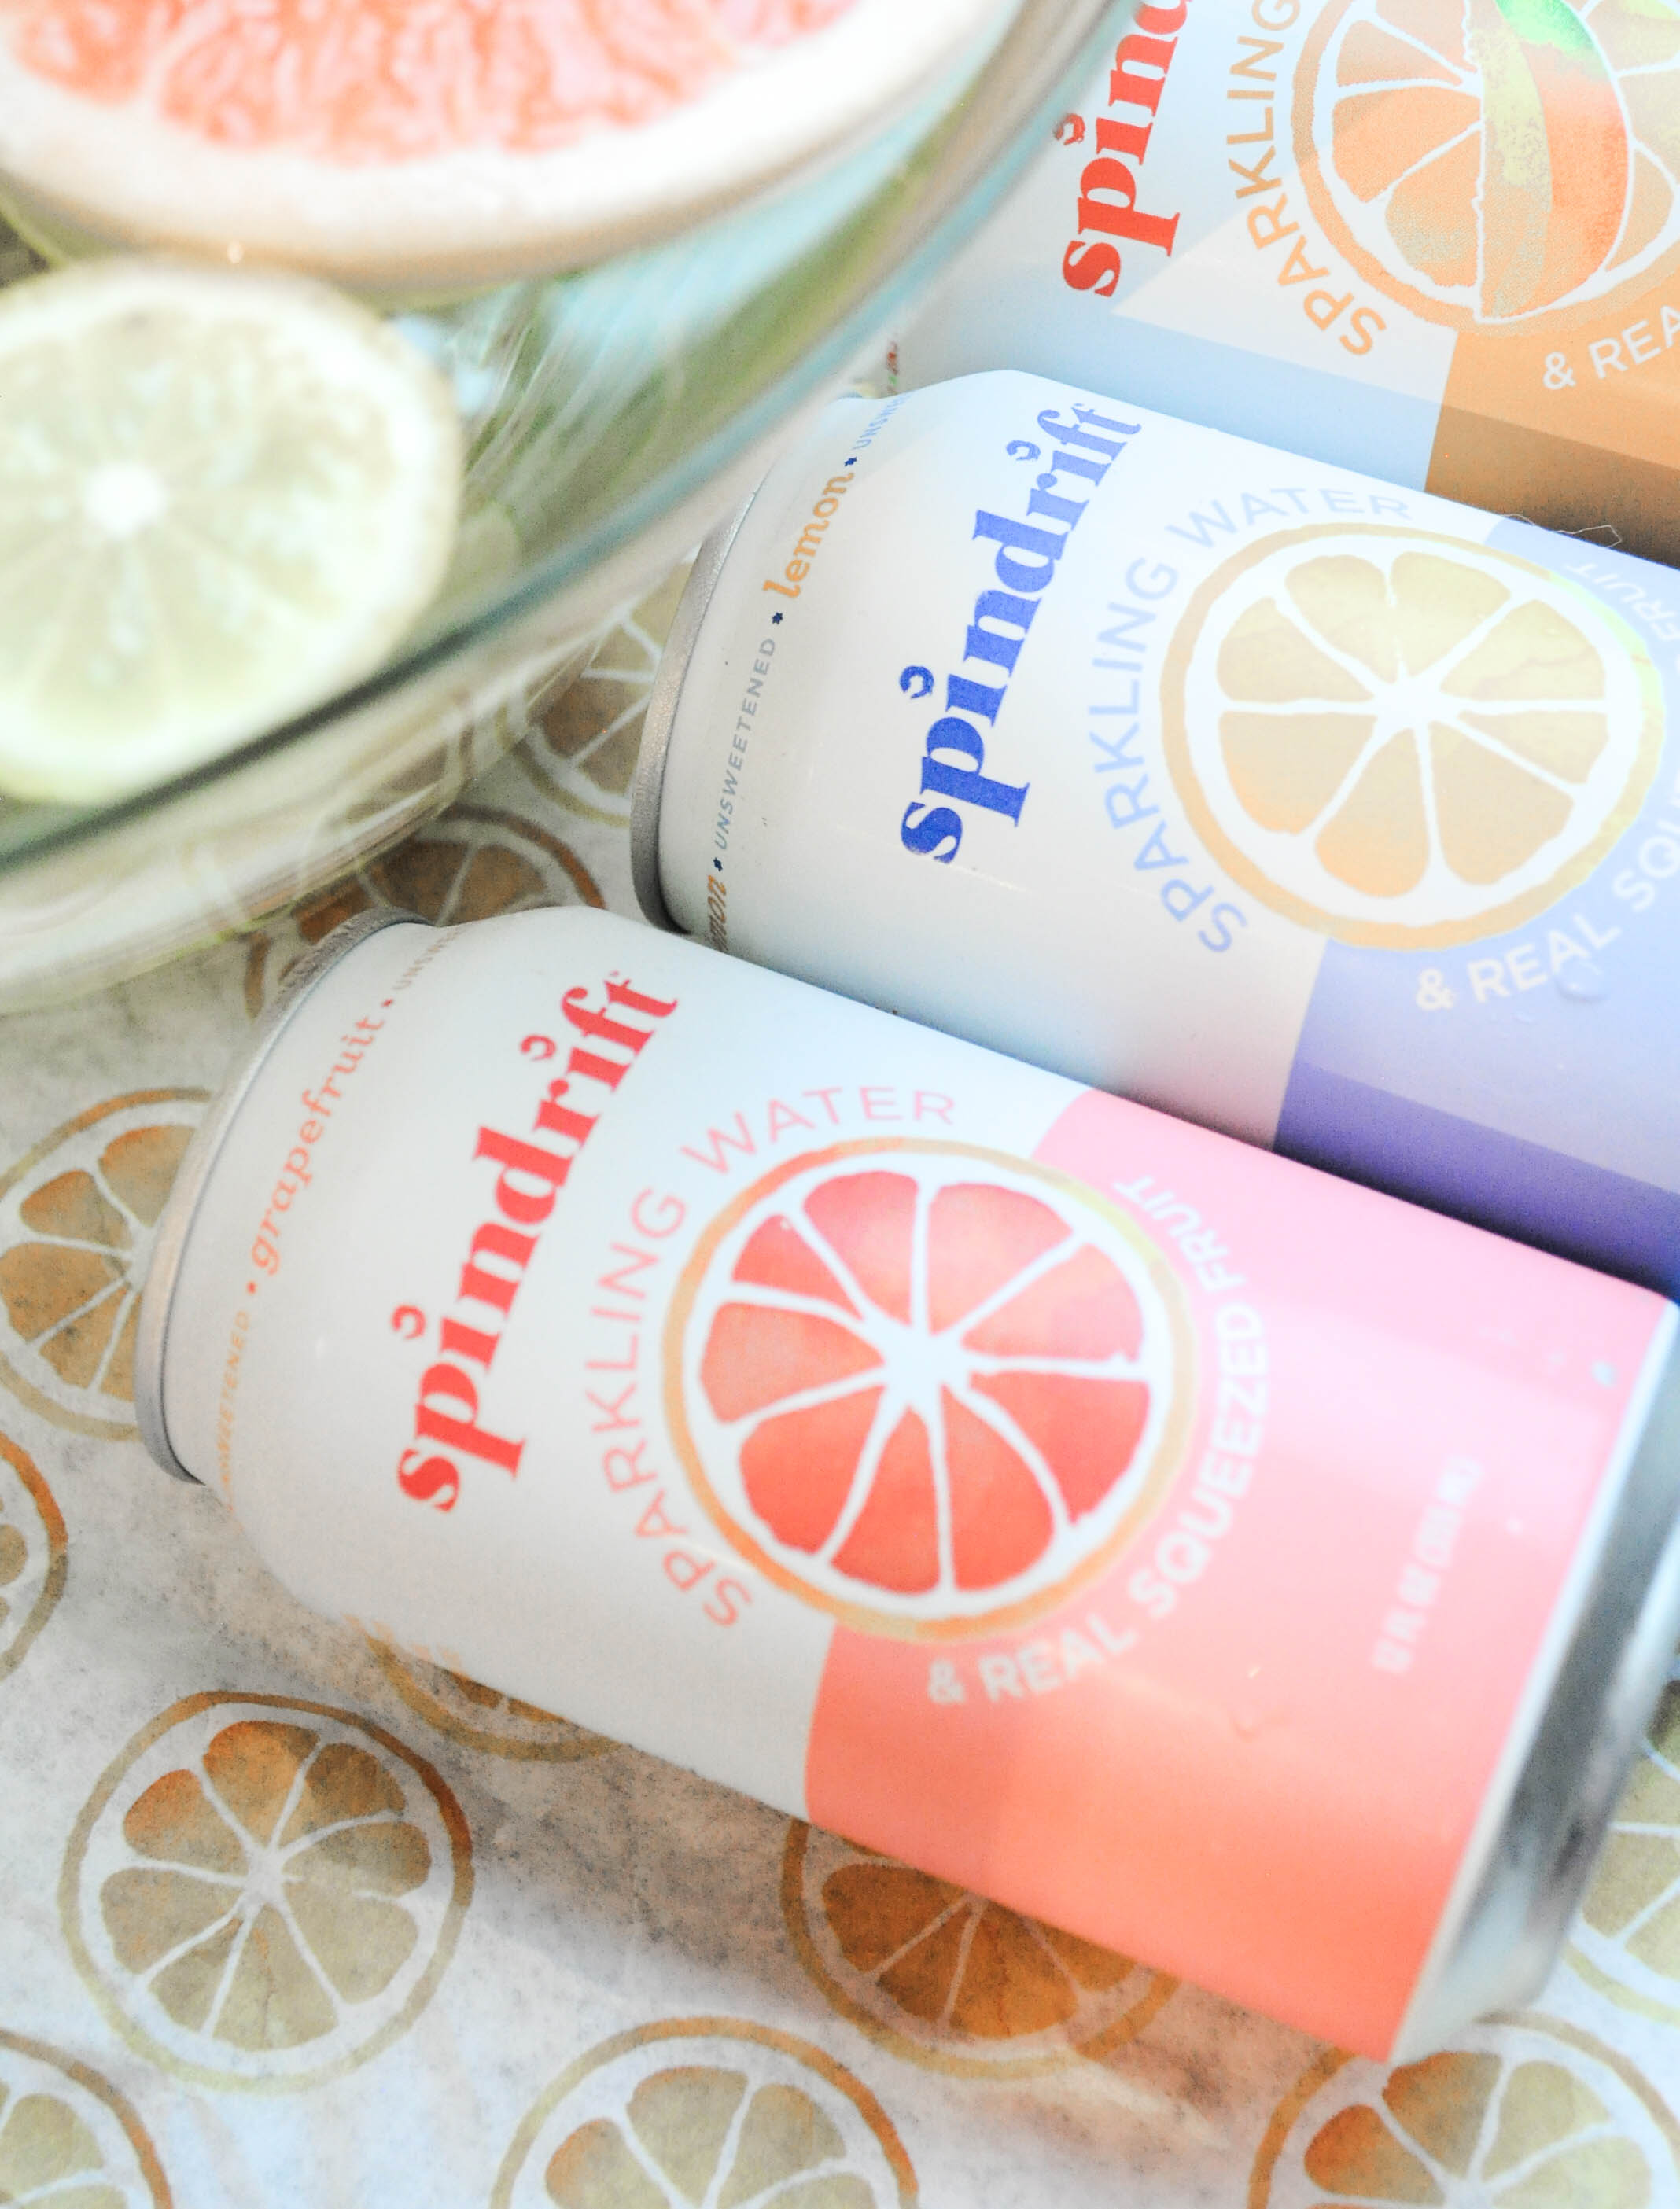 SPINDRIFT RECIPES - Here are my Top 5 favorite ways to enjoy Spindrift